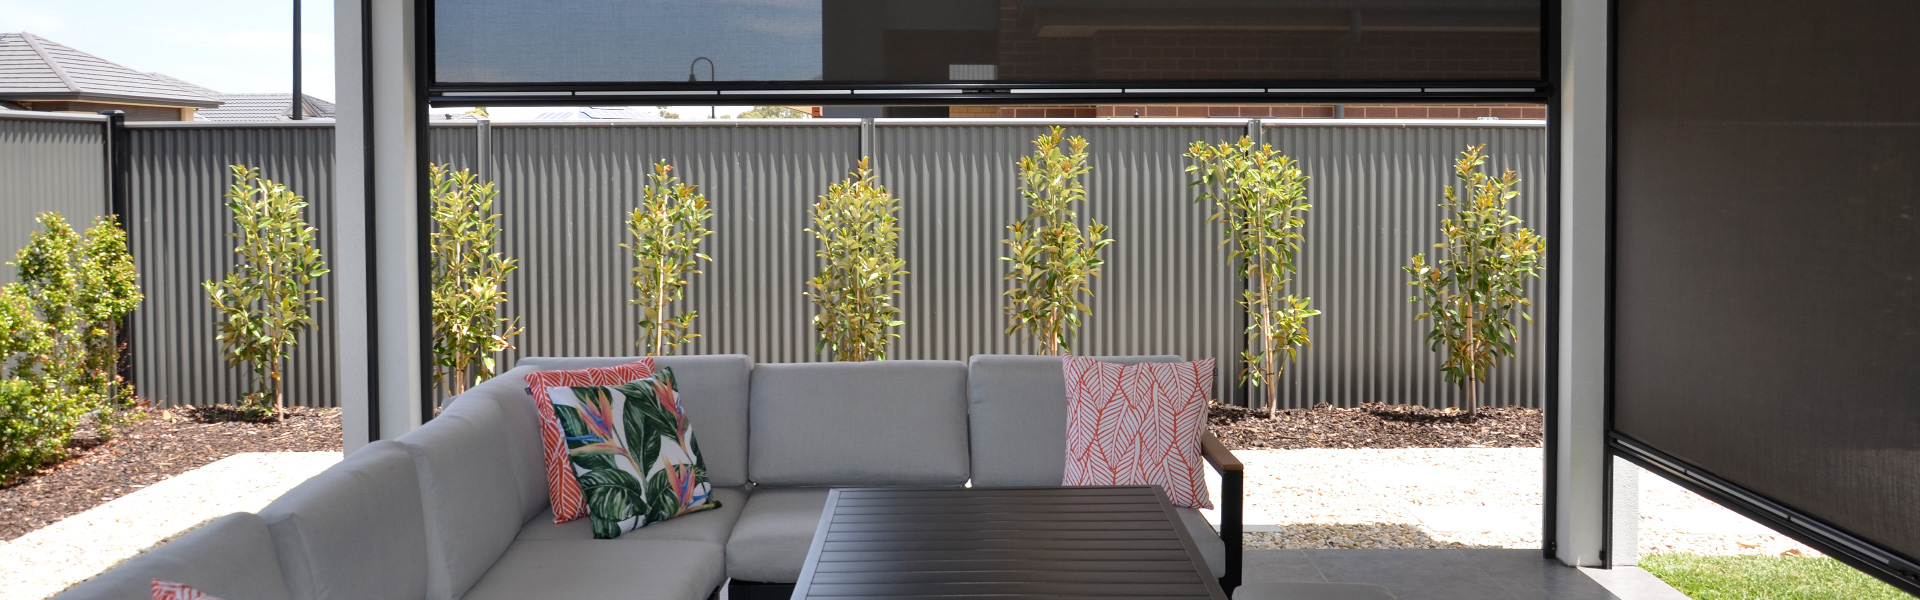 Alfresco Blinds Adelaide | Outdoor Blinds